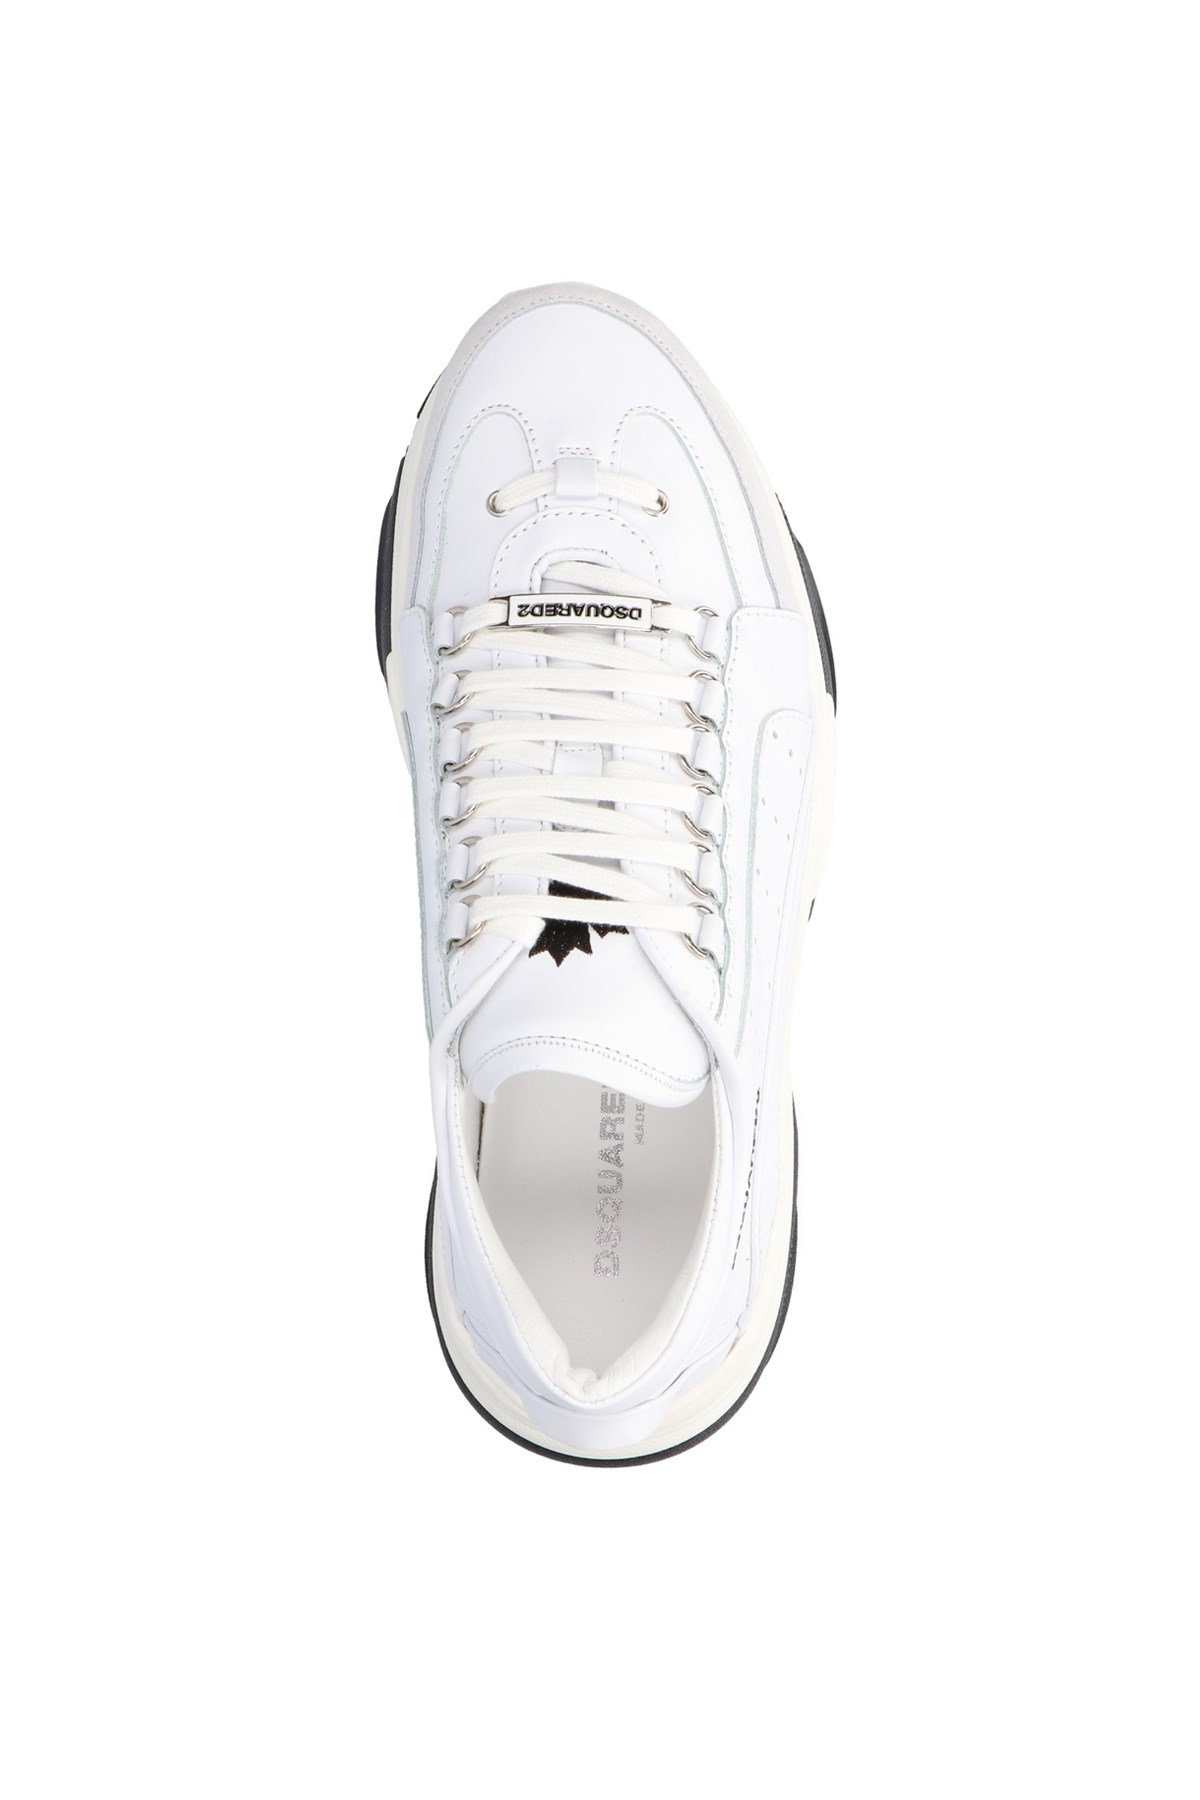 445cfb12d14 dsquared2 'Bumpy 551' sneakers available on julian-fashion.com - 63780